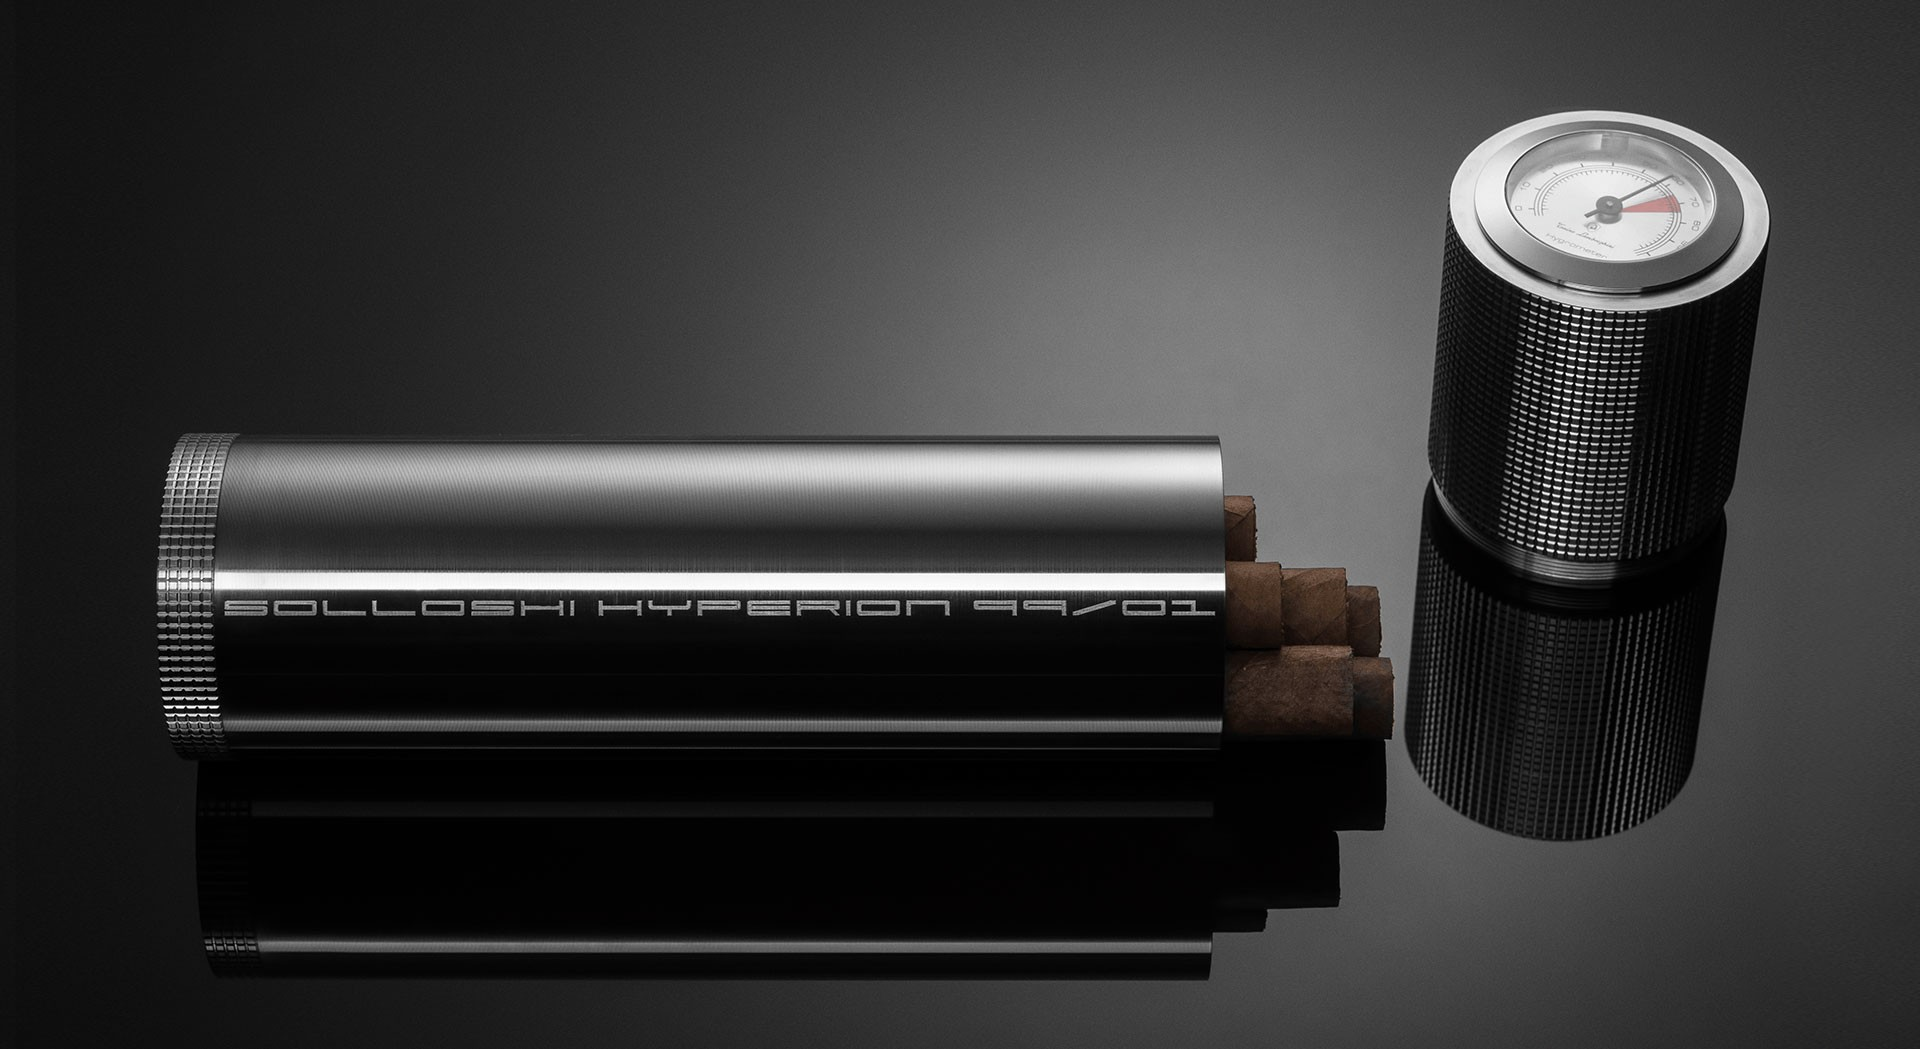 Solloshi Releases Limited Edition Line of Titanium Cigar Accessories